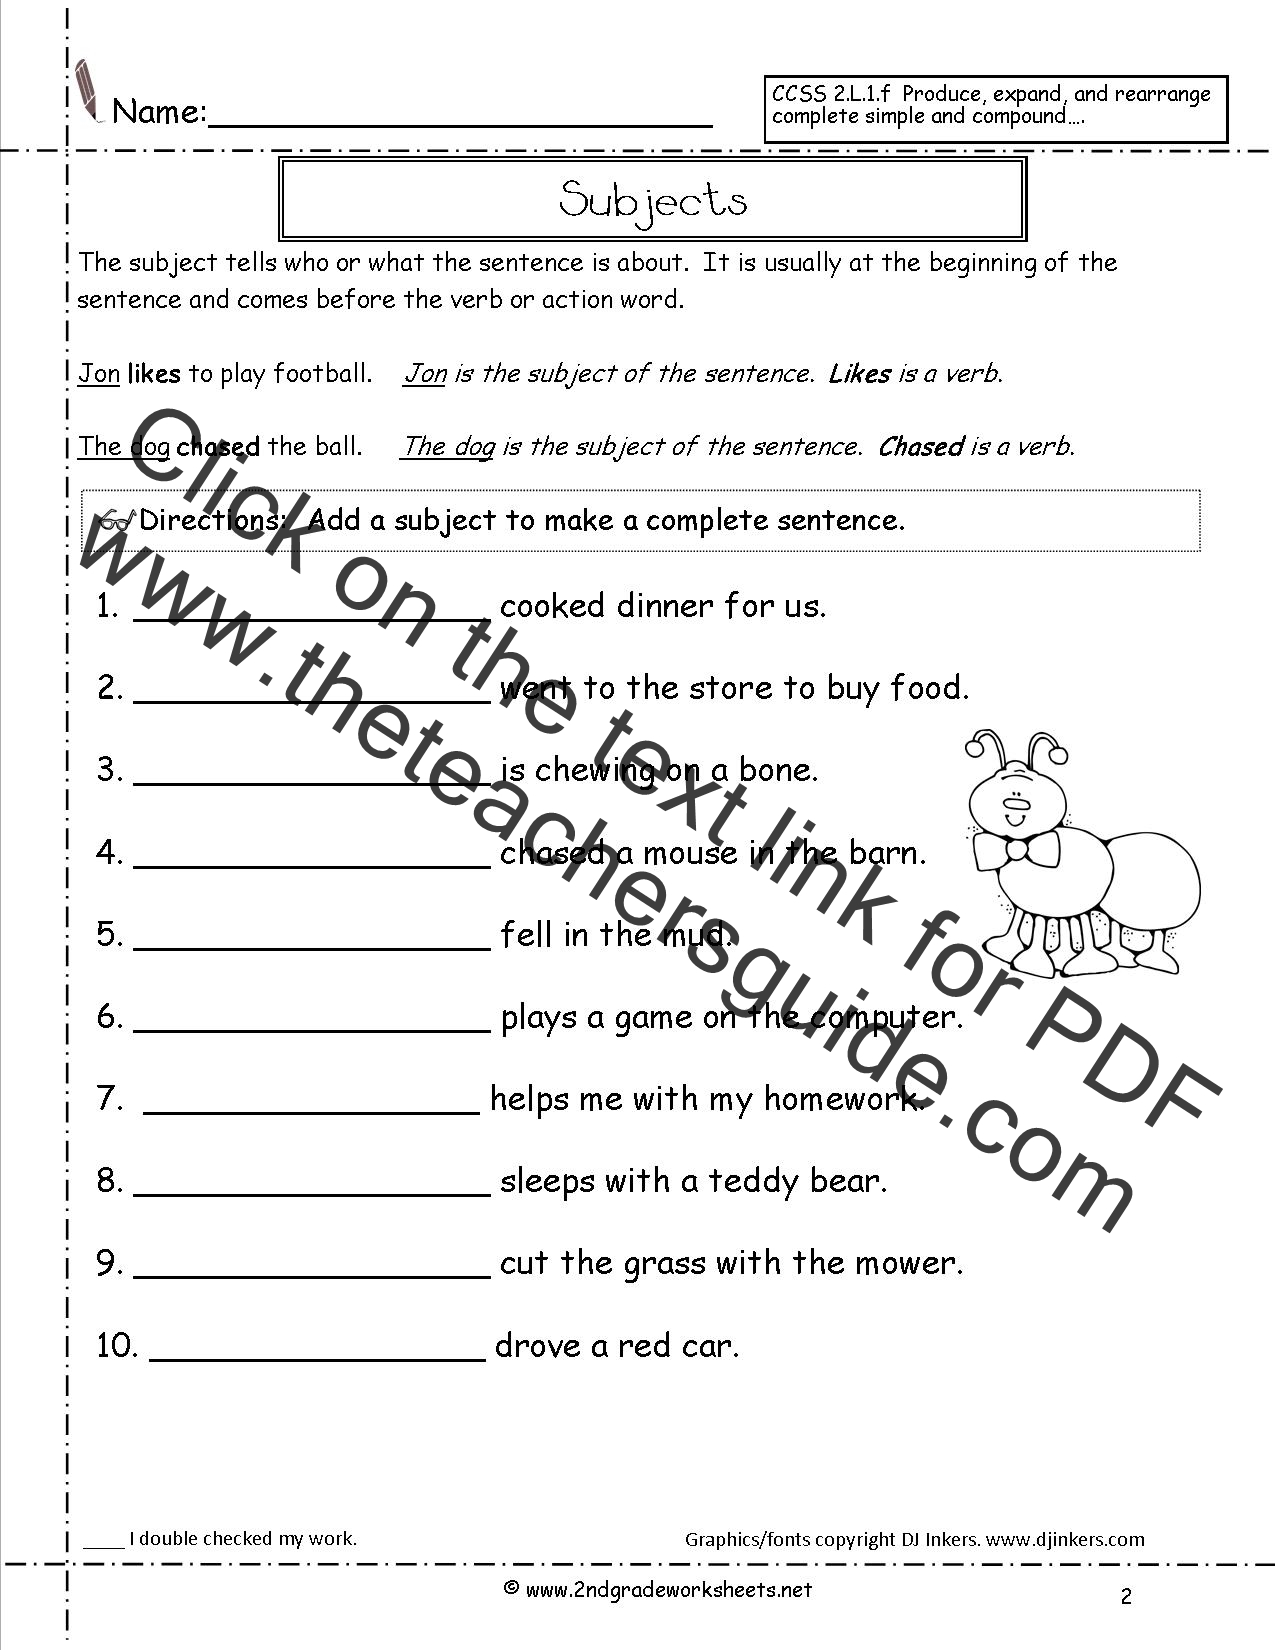 Worksheets Four Types Of Sentences Worksheet second grade sentences worksheets ccss 2 l 1 f subjects worksheet sentence subjects